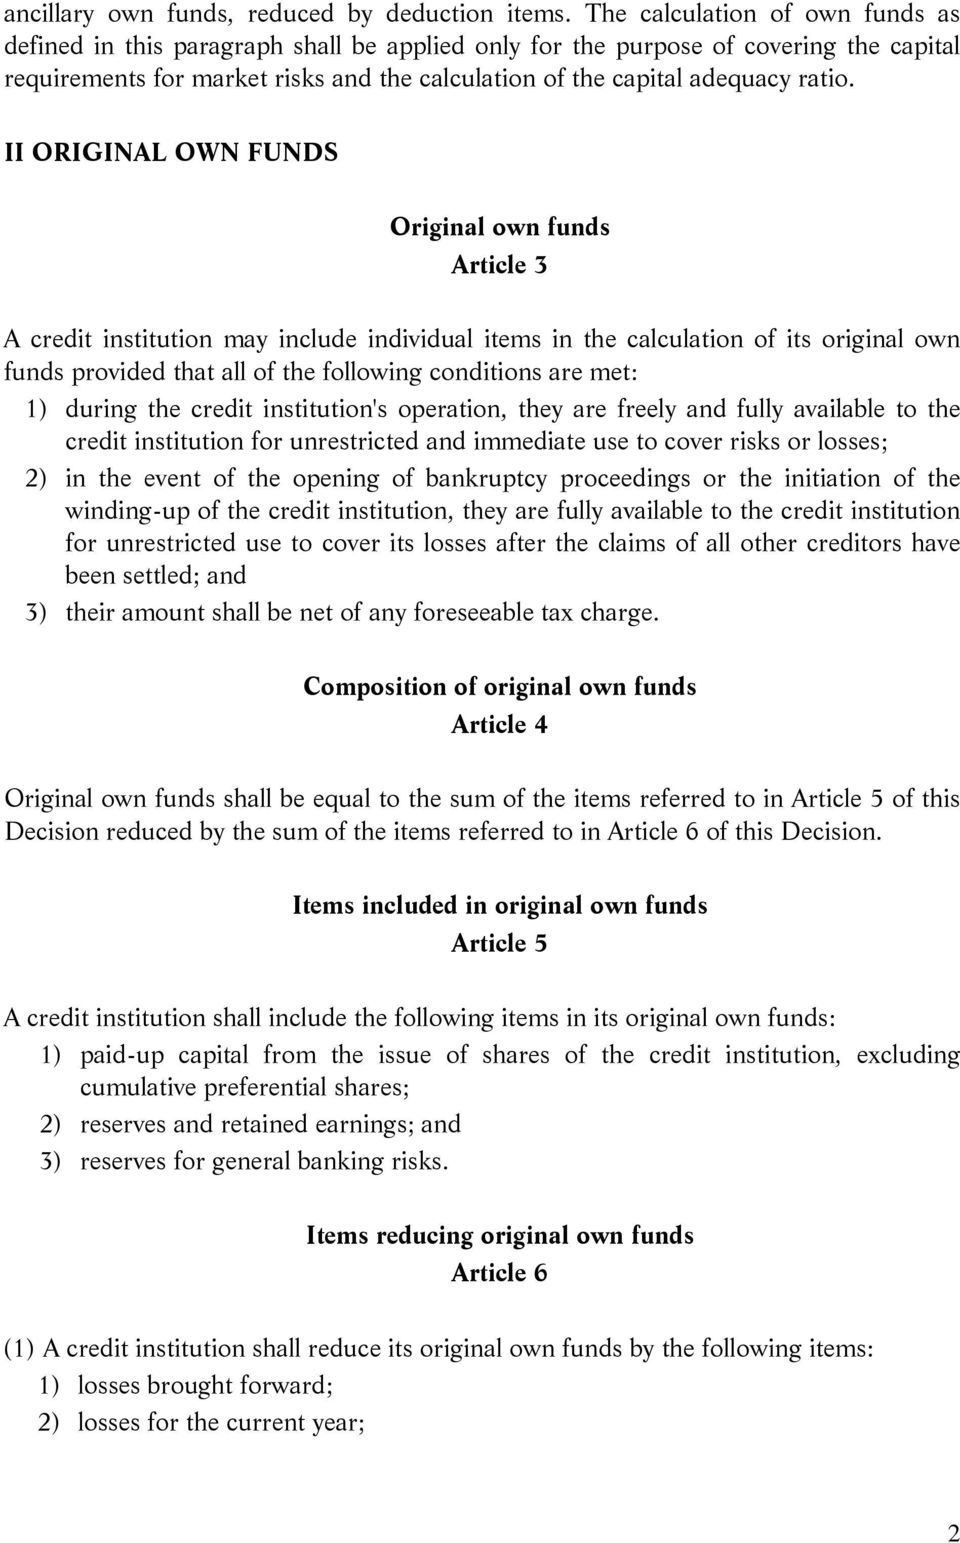 II ORIGINAL OWN FUNDS Original own funds Article 3 A credit institution may include individual items in the calculation of its original own funds provided that all of the following conditions are